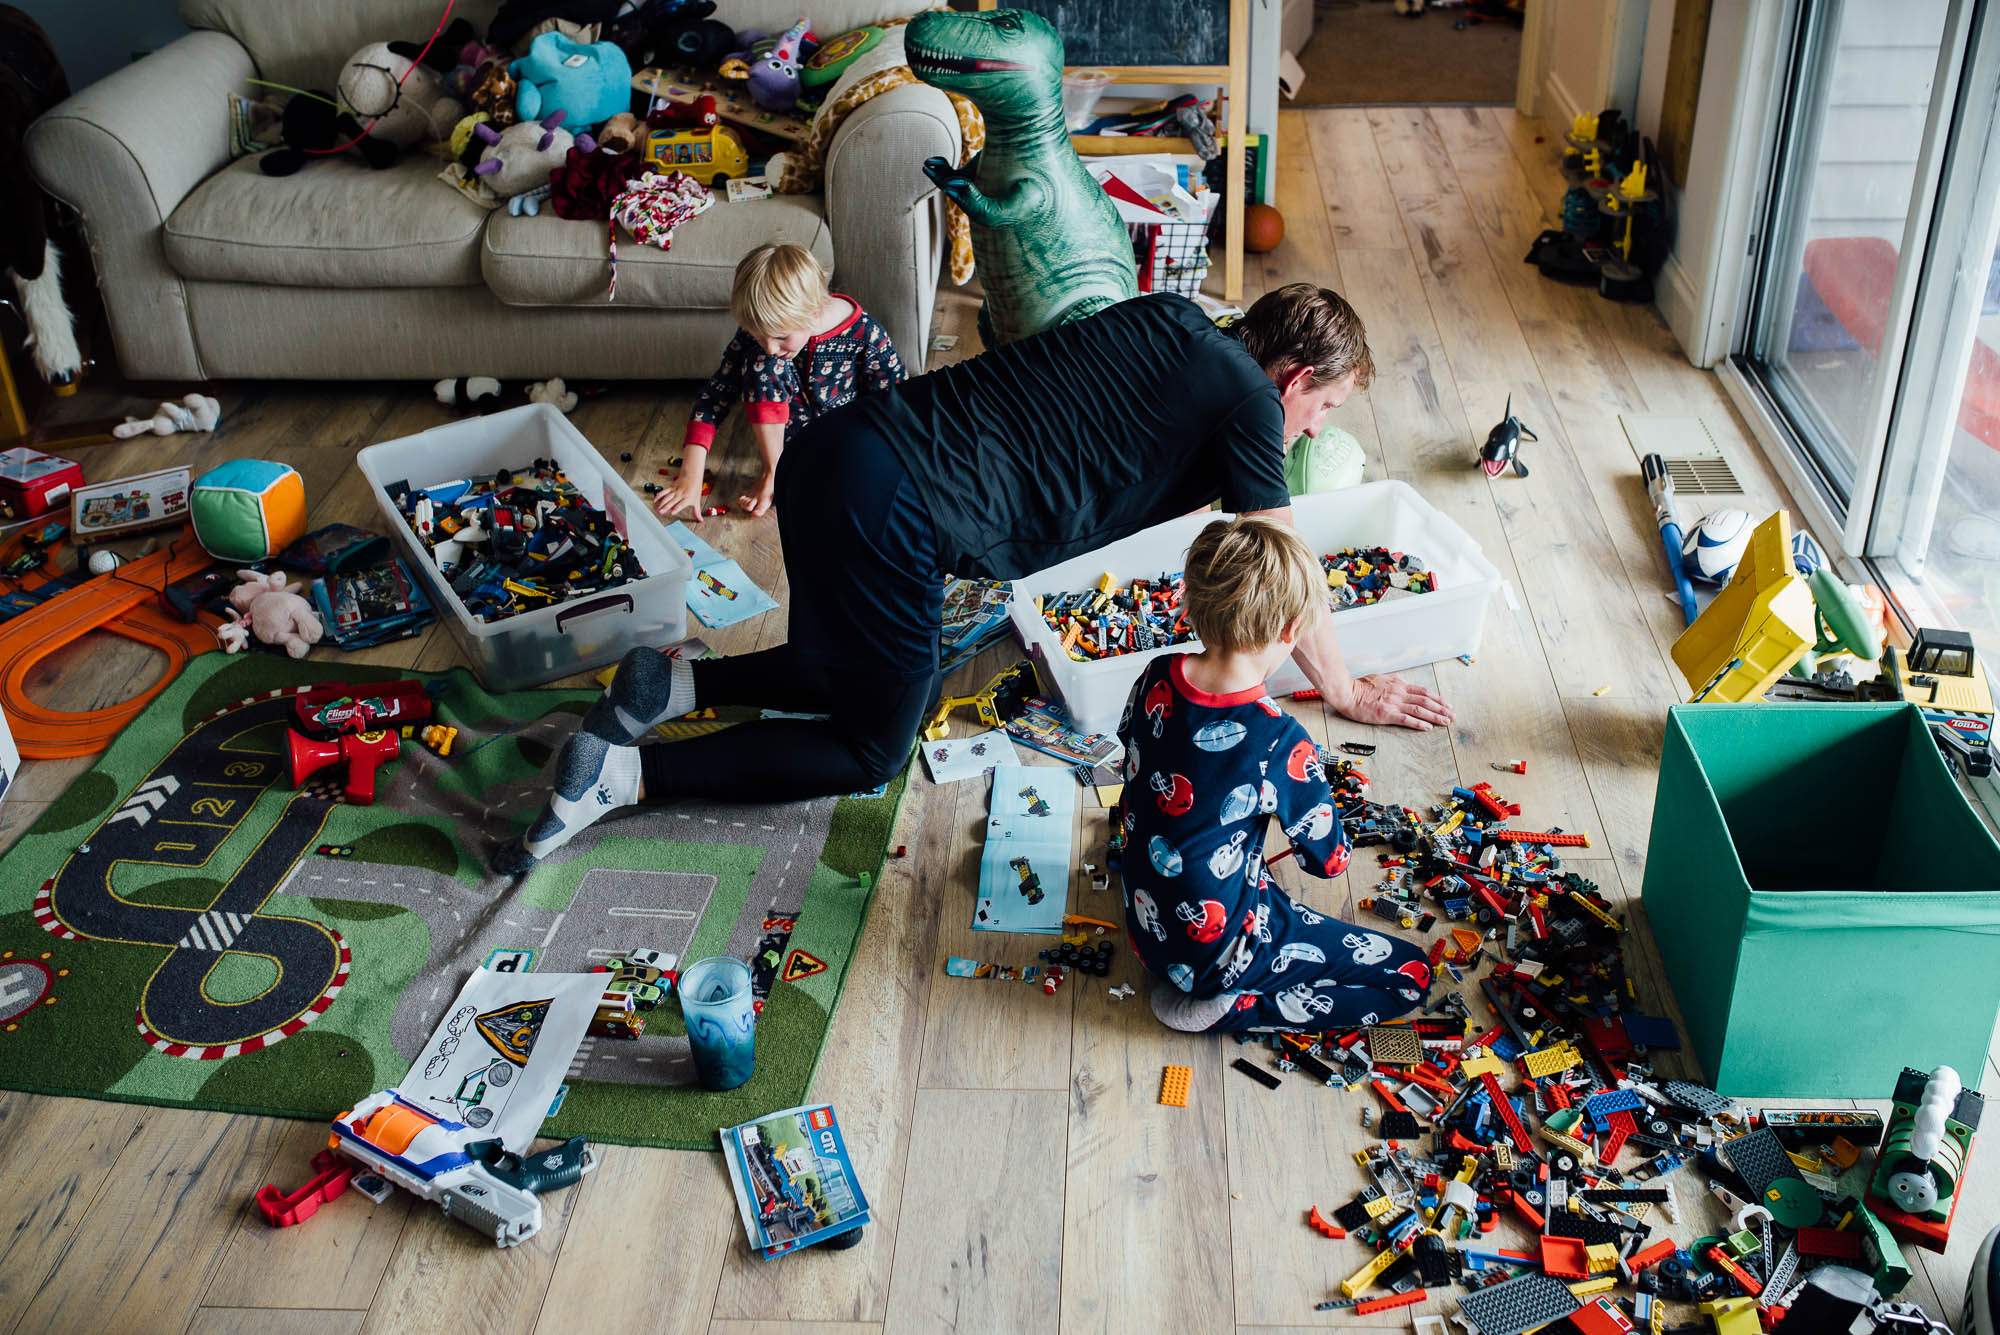 boys_and_their_dad_playing_lego_in_messy_playroom.jpg